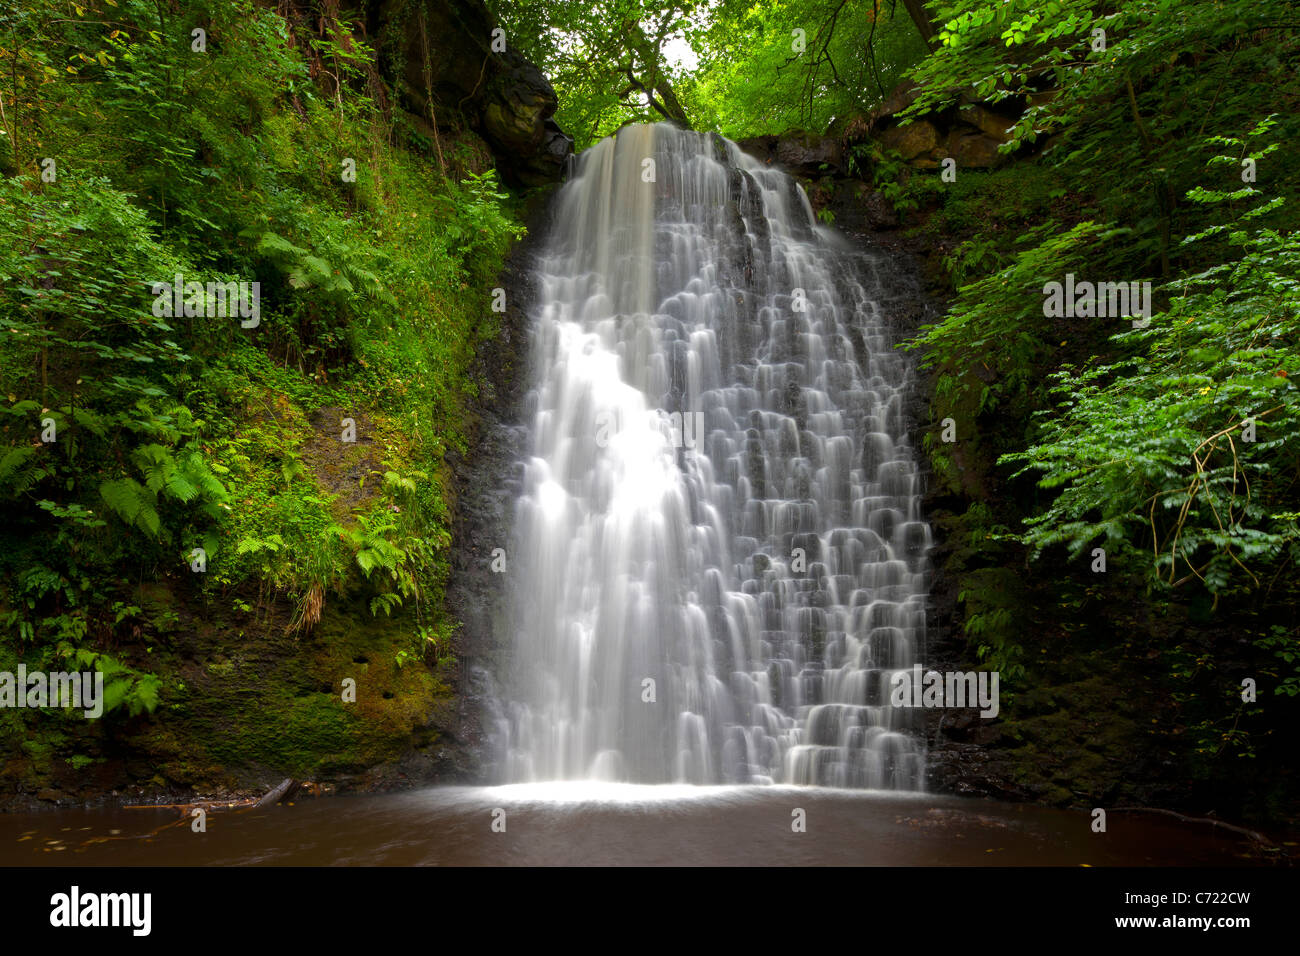 Falling Foss Waterfall, near Whitby, North Yorkshire - Stock Image